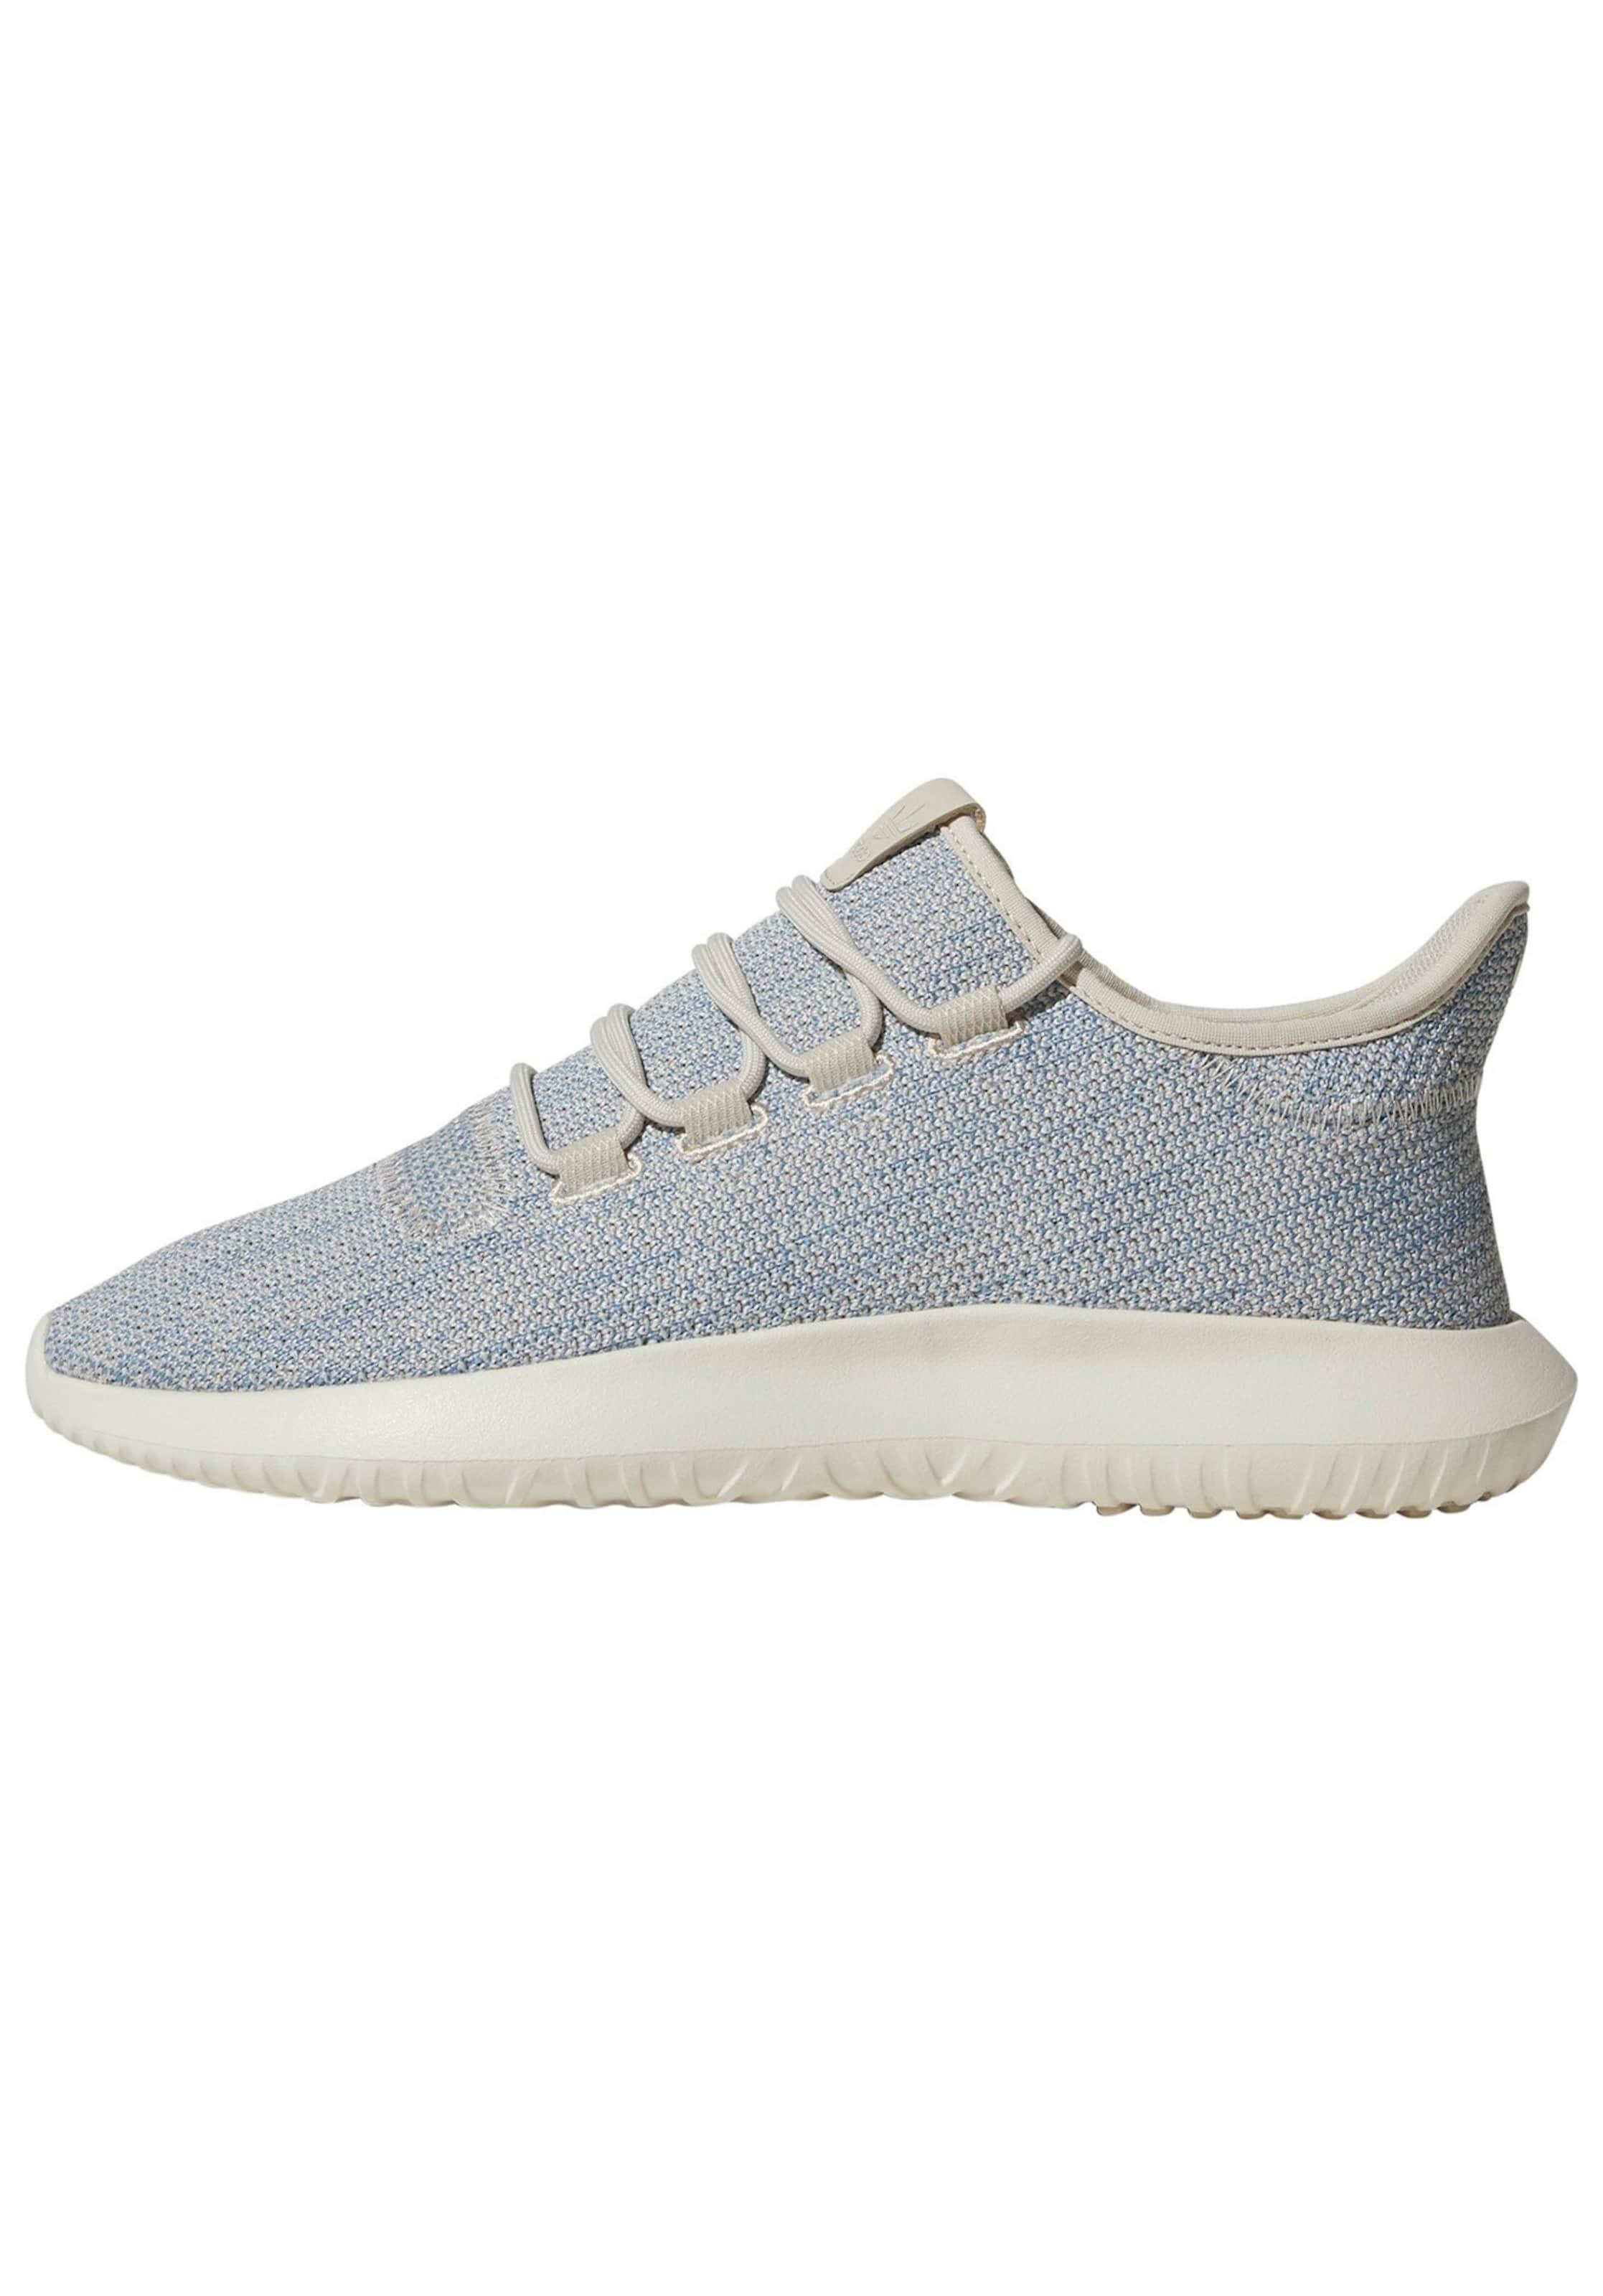 ADIDAS ORIGINALS Tubular Shadow Ck Sneaker